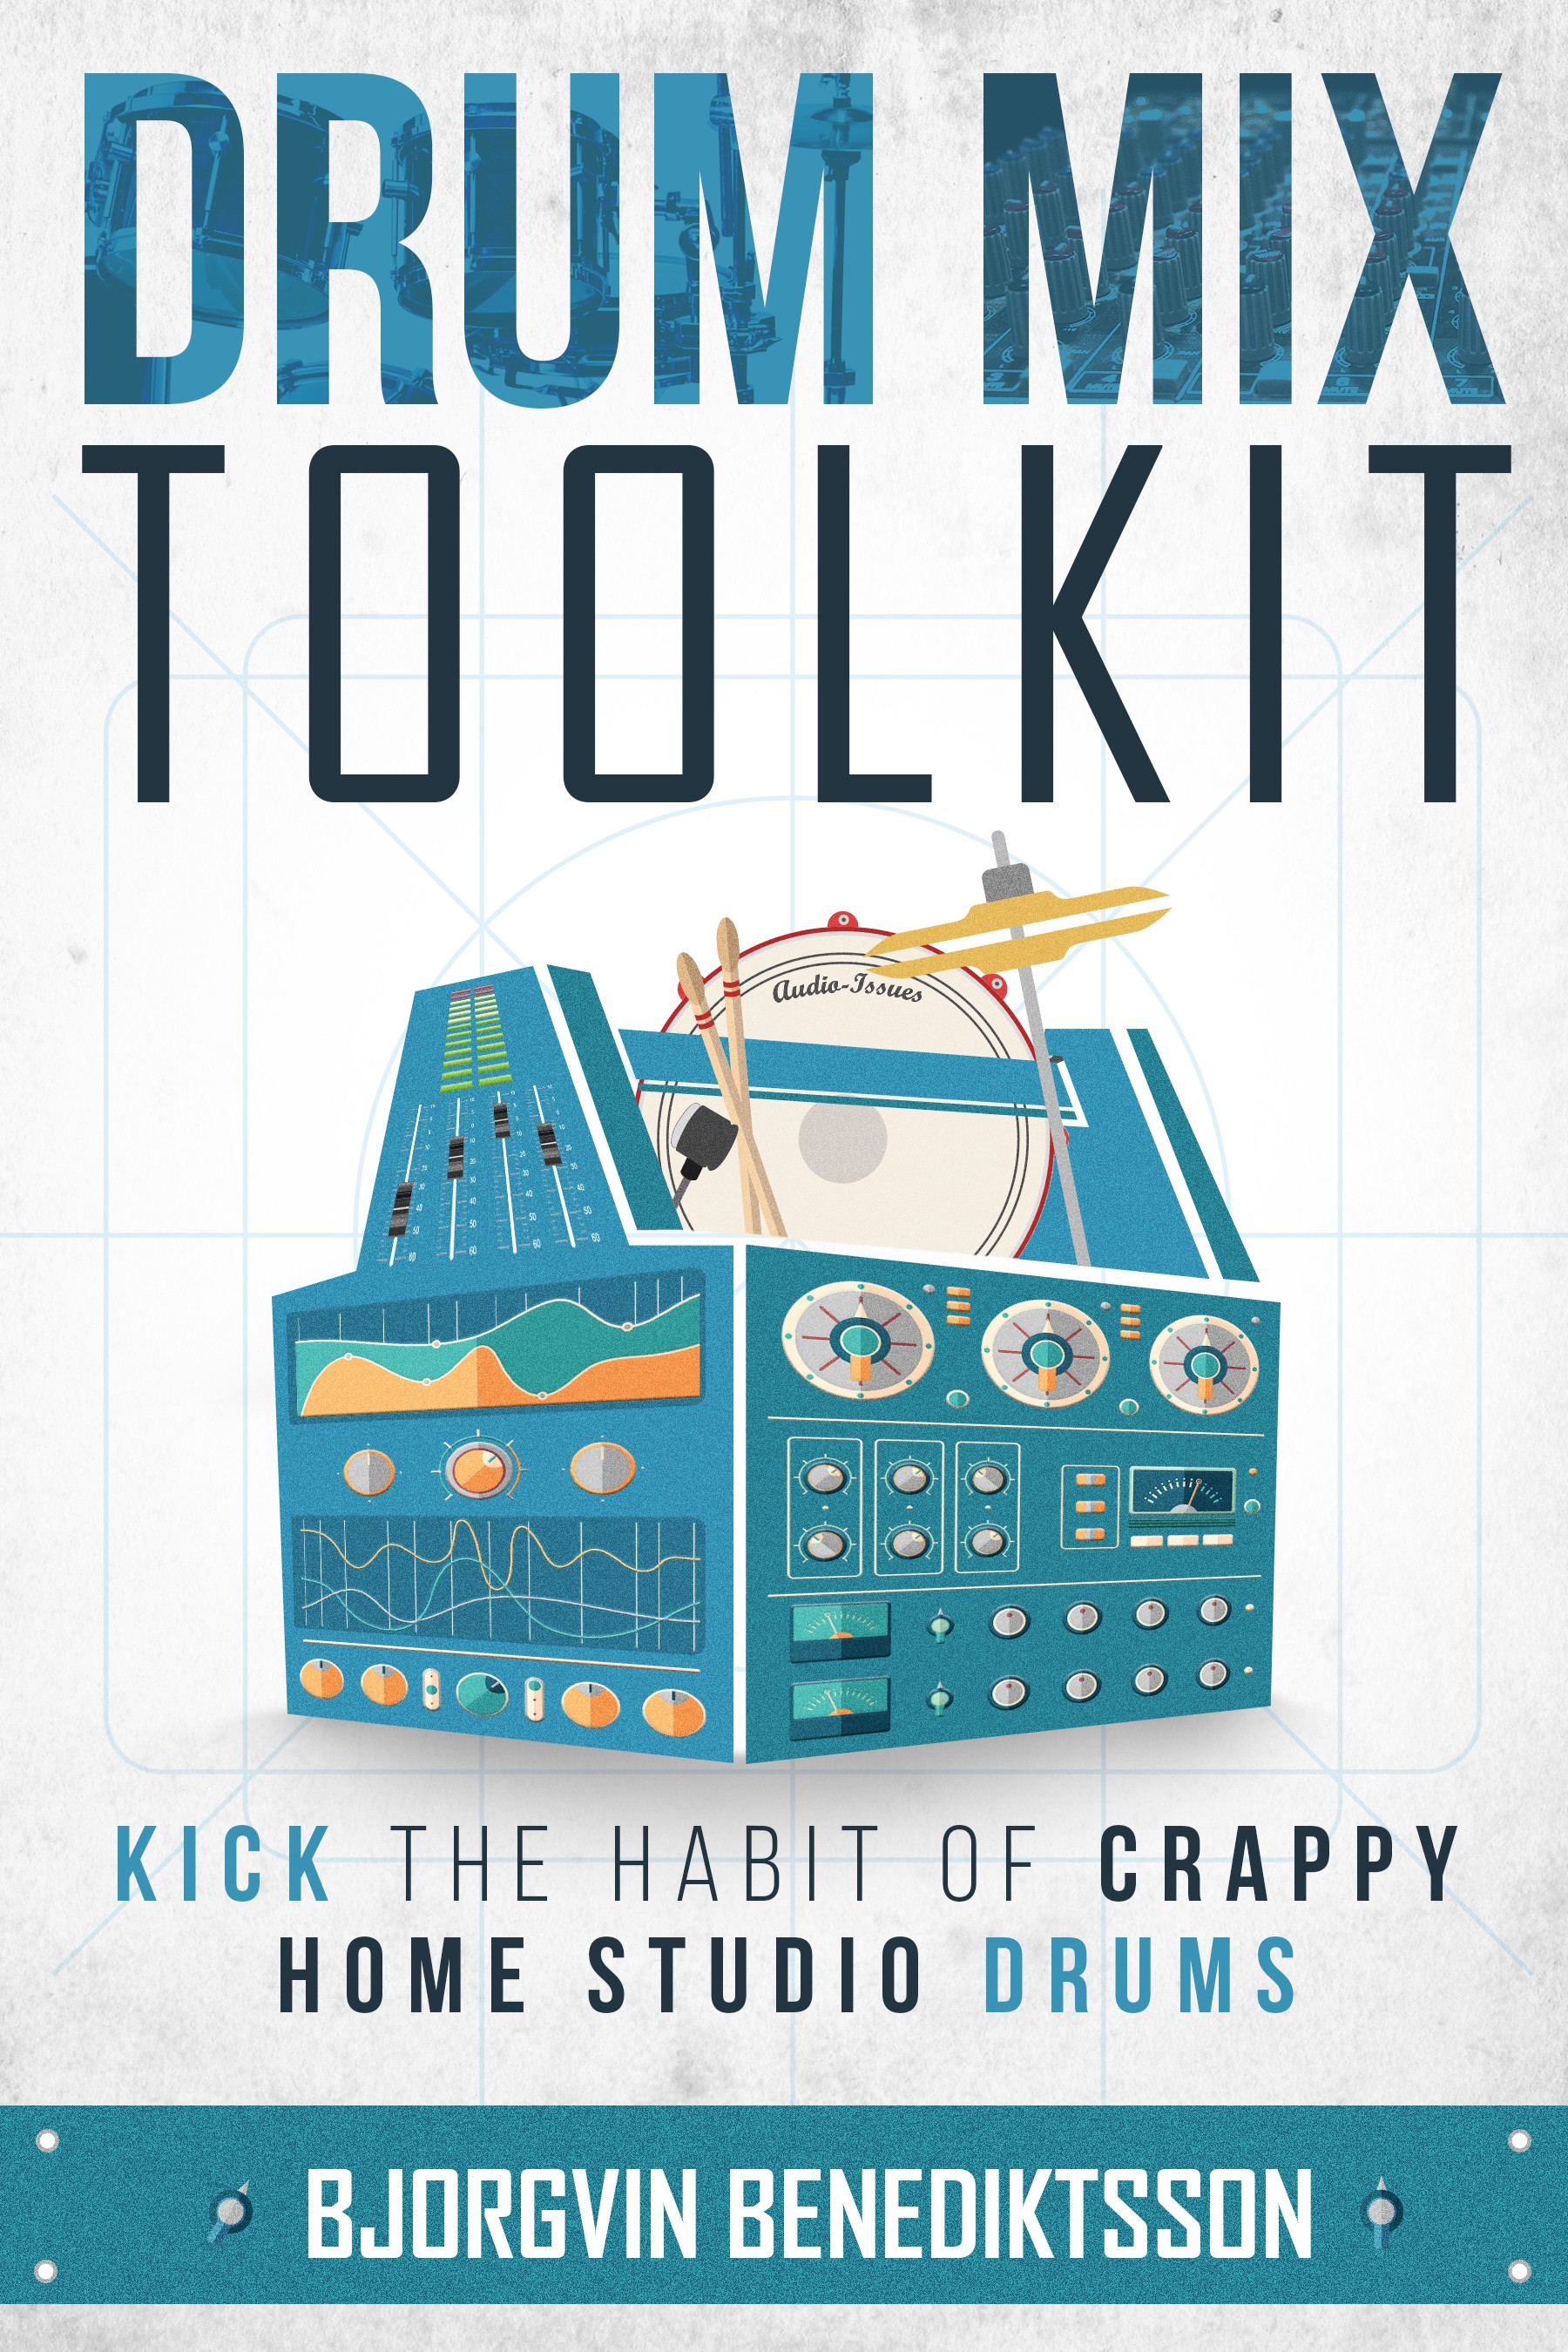 Drum Mix Toolkit: Design a Best-Selling Book Cover about music production and mixing drums